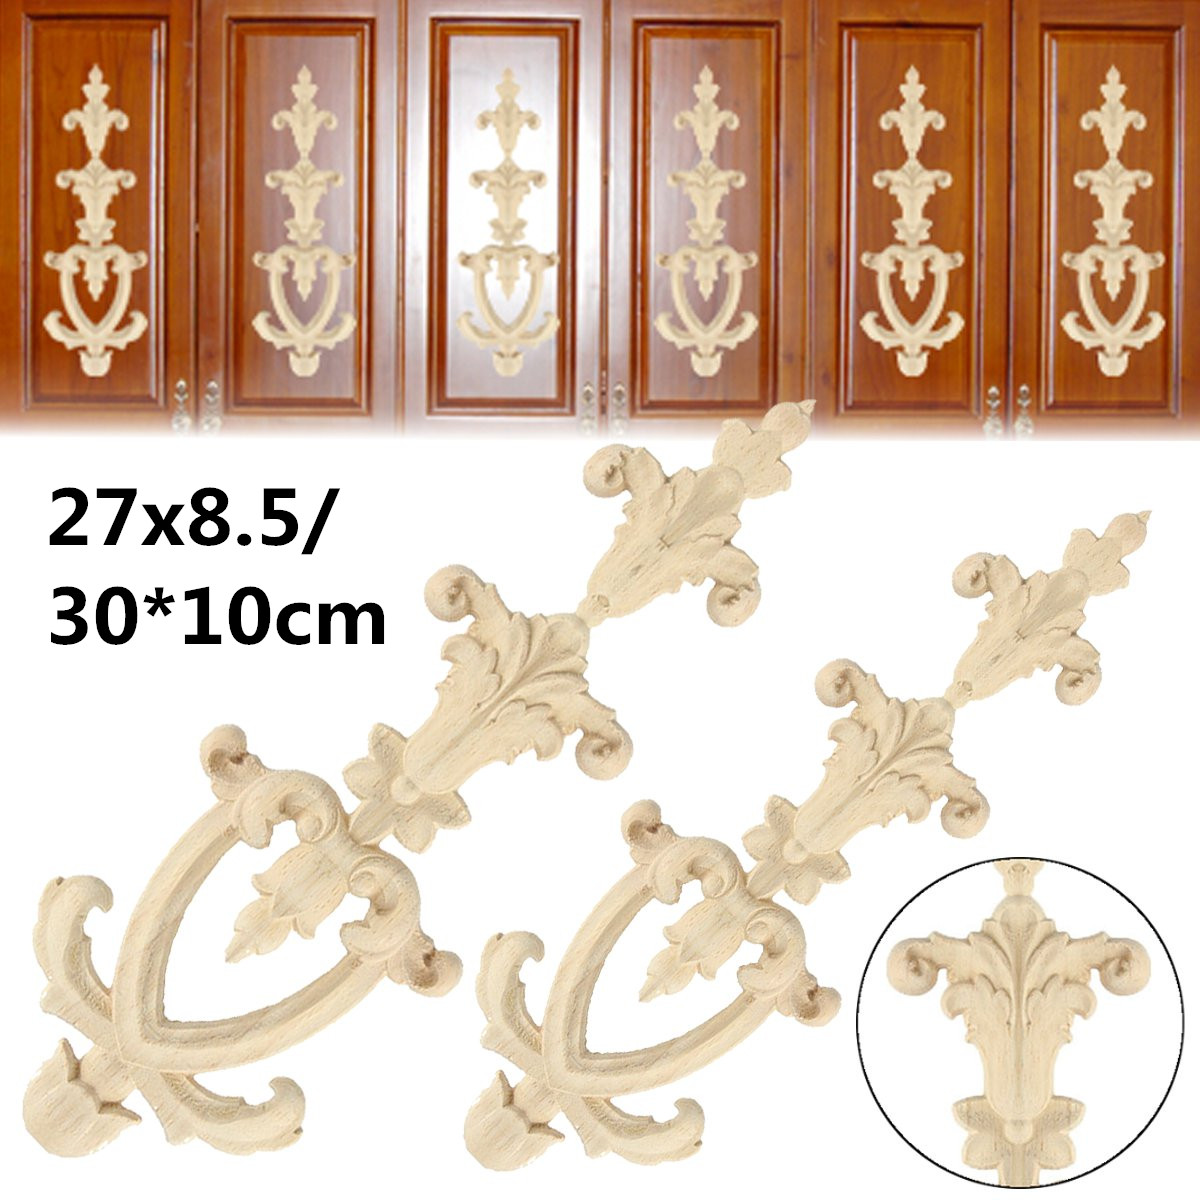 Flower Wood Carved Applique Wood Carving Decal for Wall Door Cabinet Furniture 27x8.5cm 30x10cm